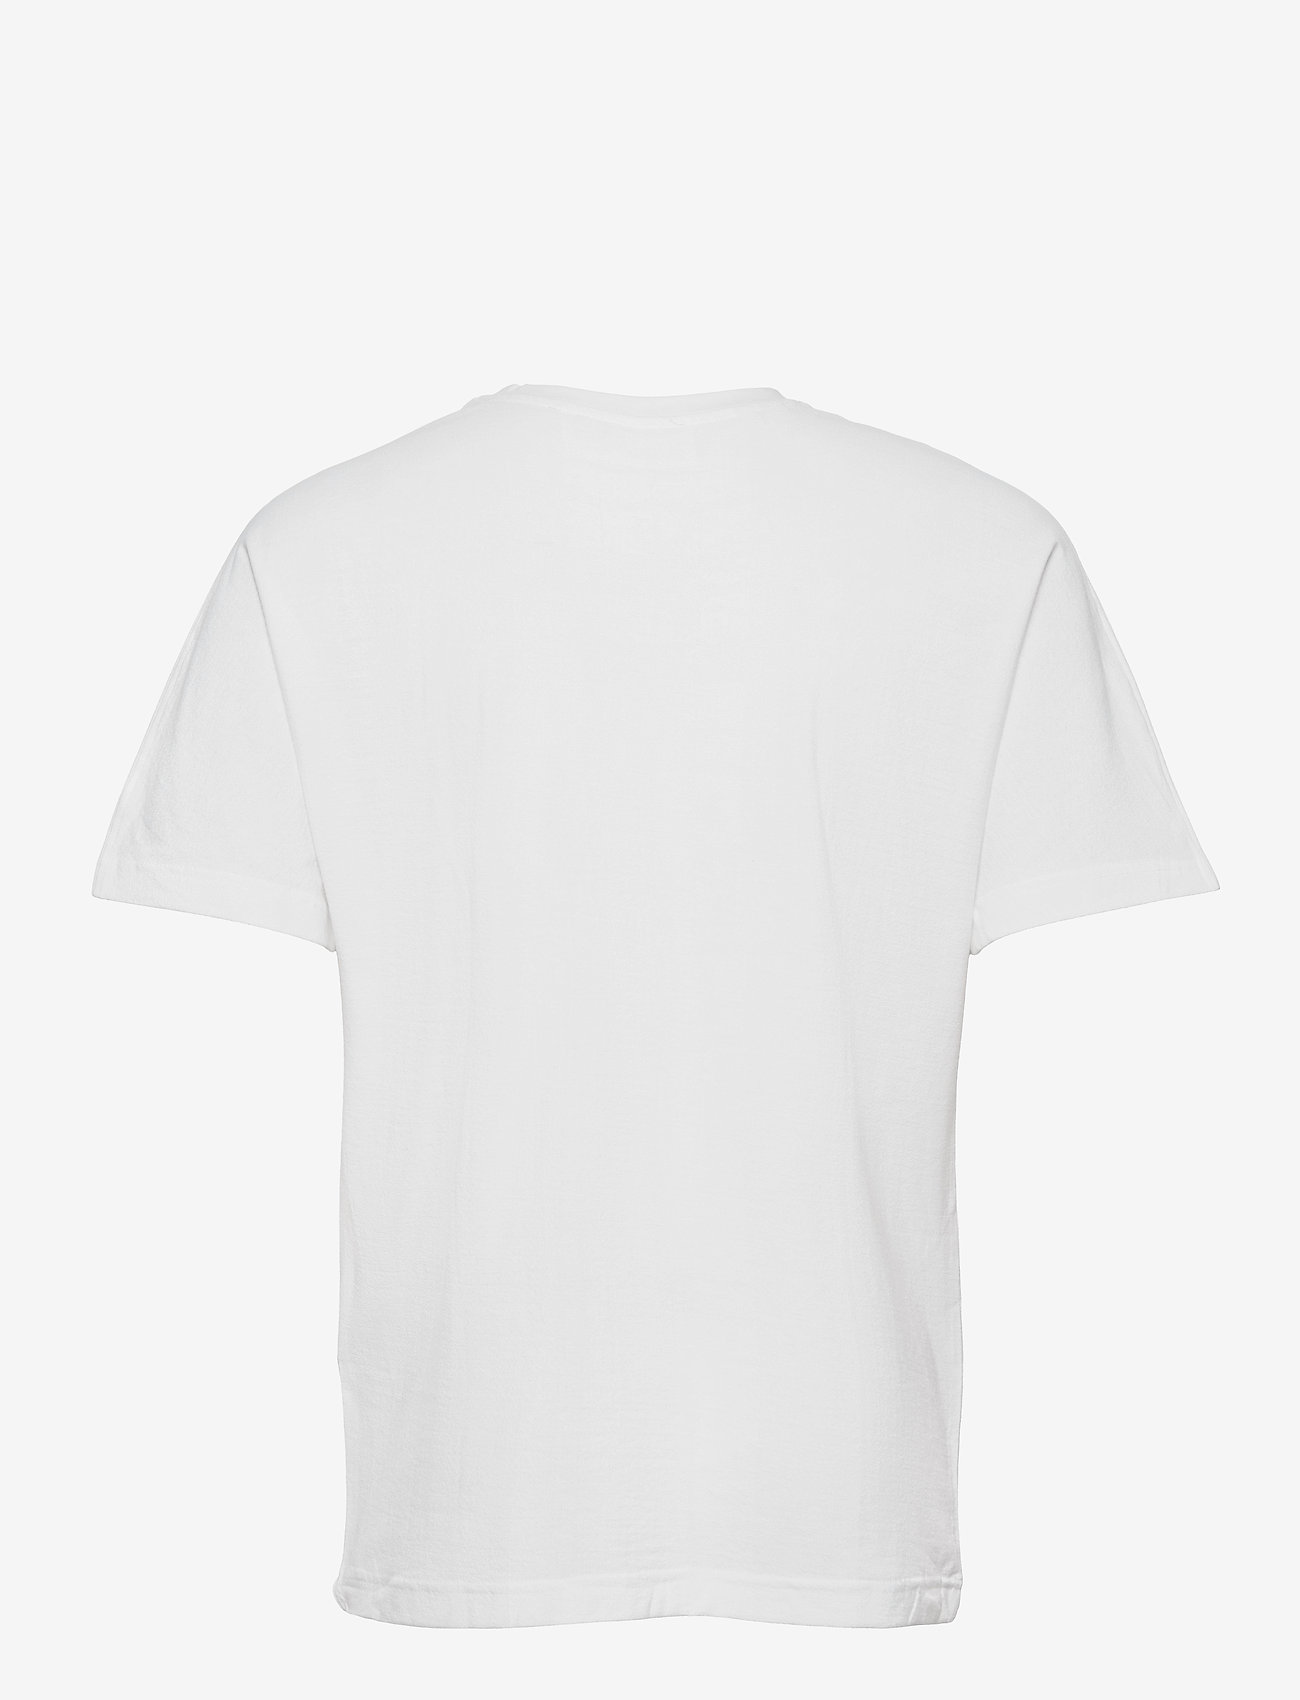 Selected Homme - SLHRELAXALBION SS O-NECK TEE G - podstawowe koszulki - bright white - 1